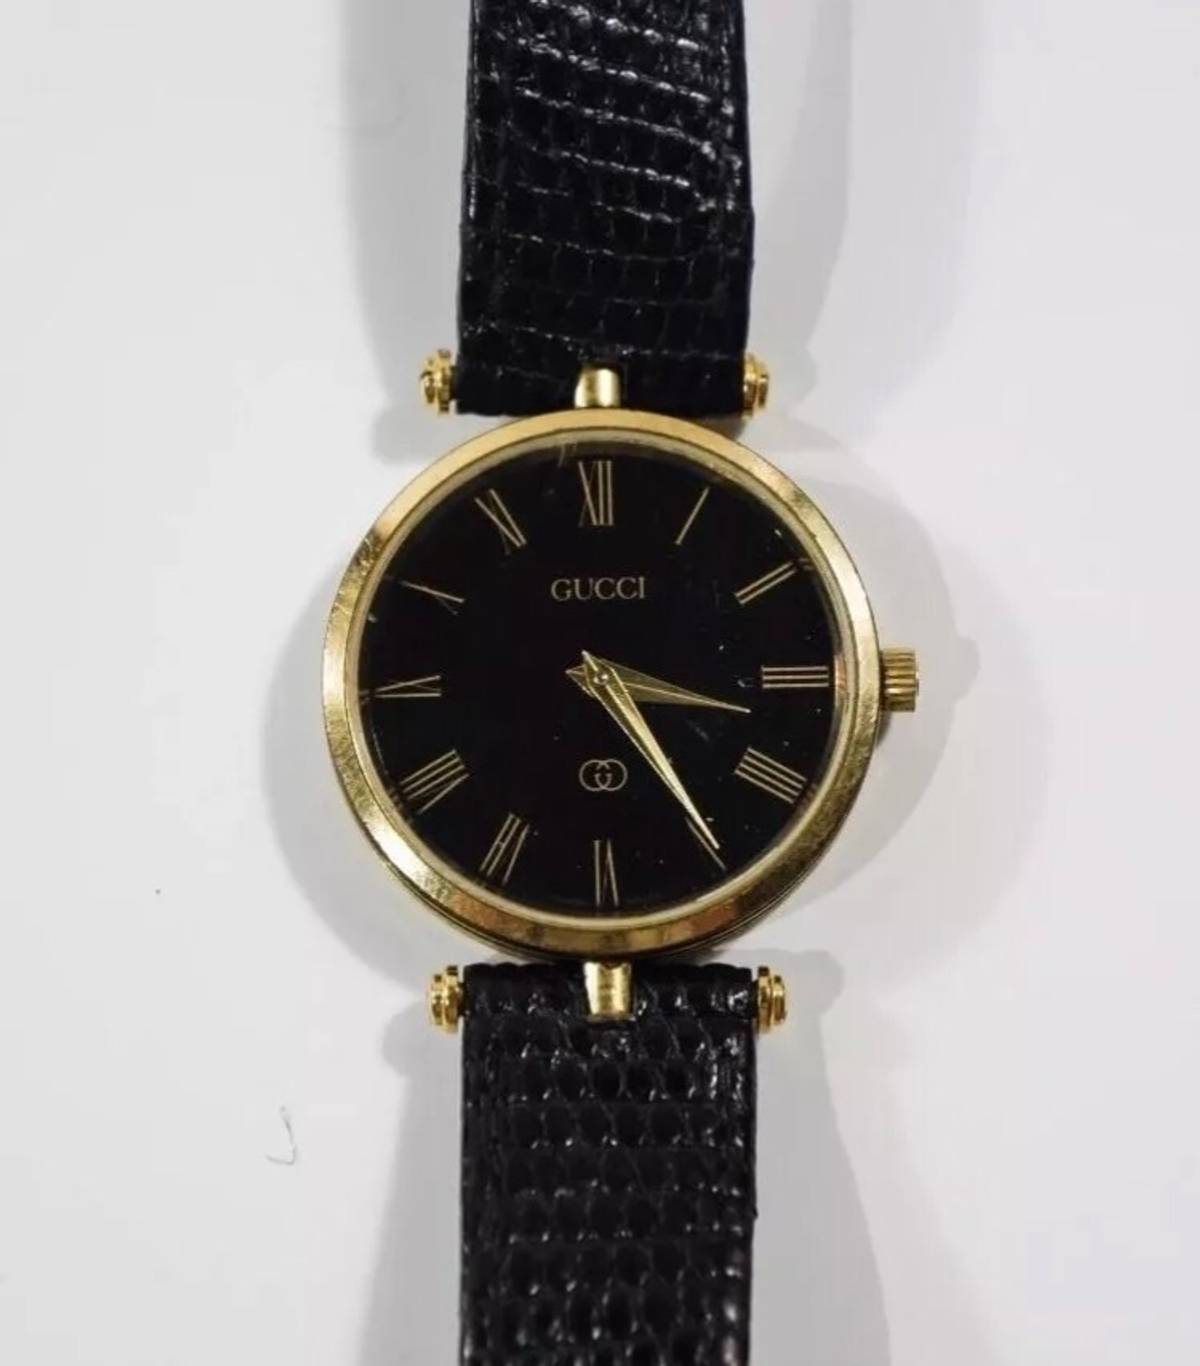 Gucci Vintage Gucci Watch ⌚️ Size one size